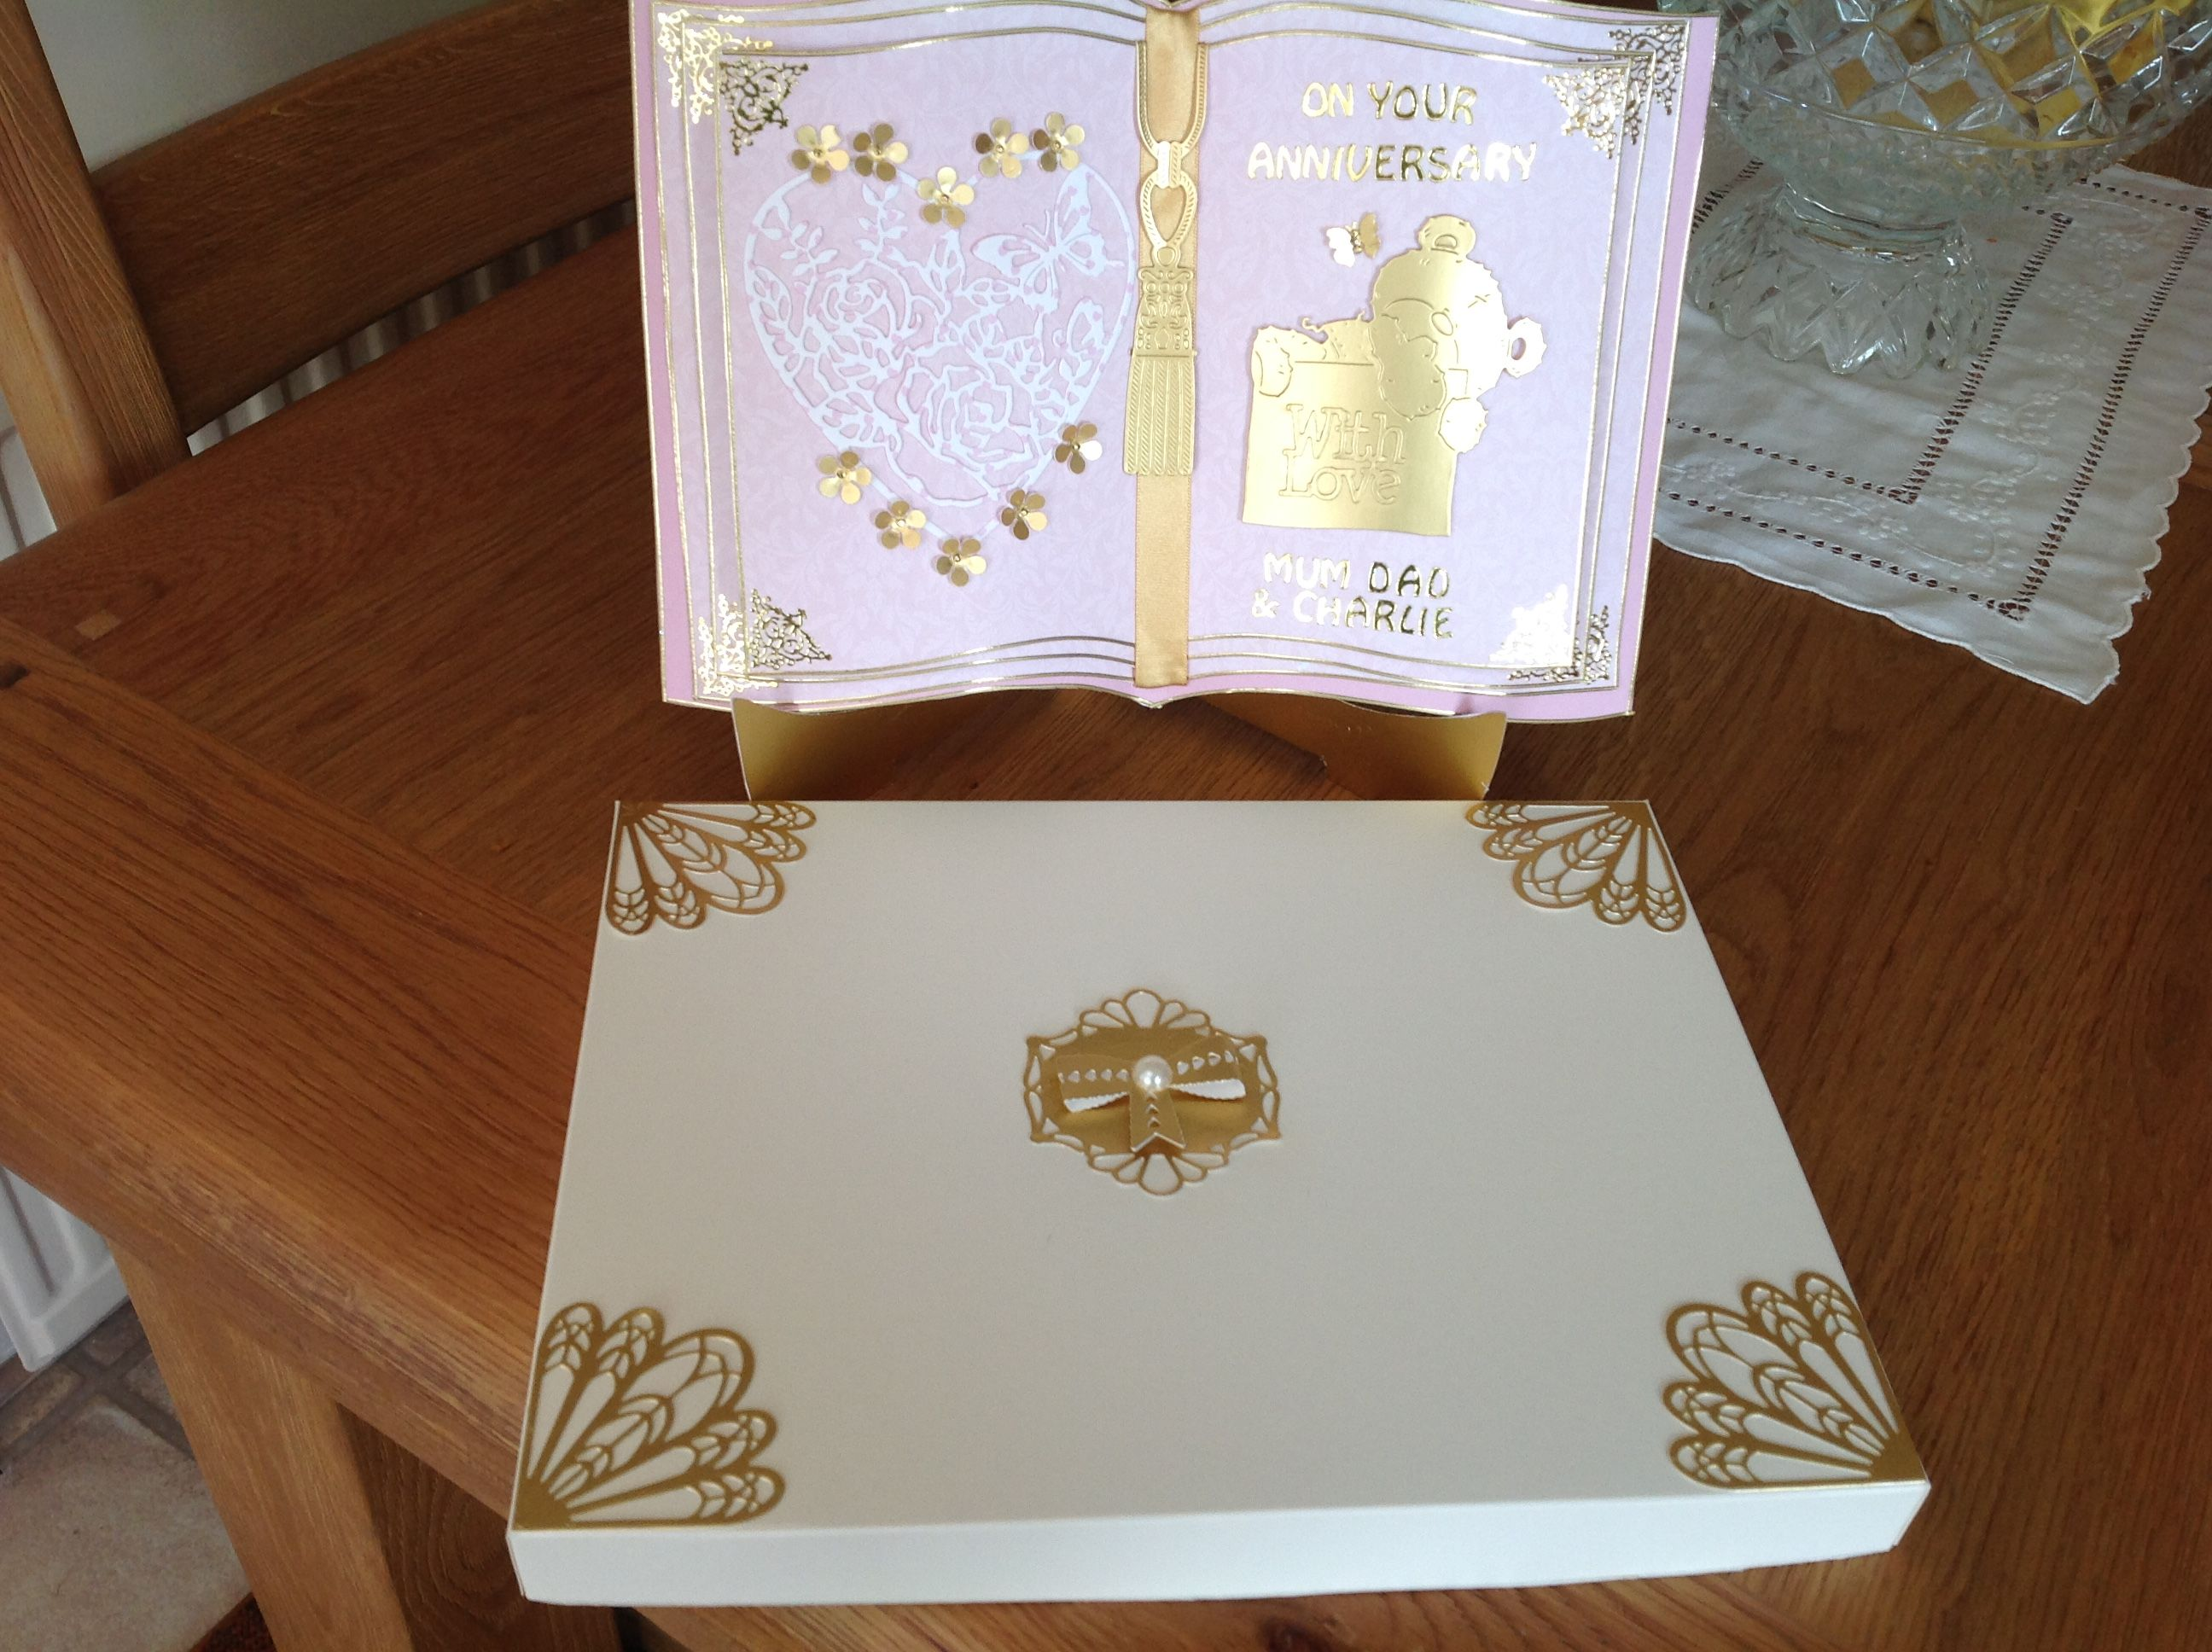 Pin by June Watkins on My cards Decorative boxes, I card